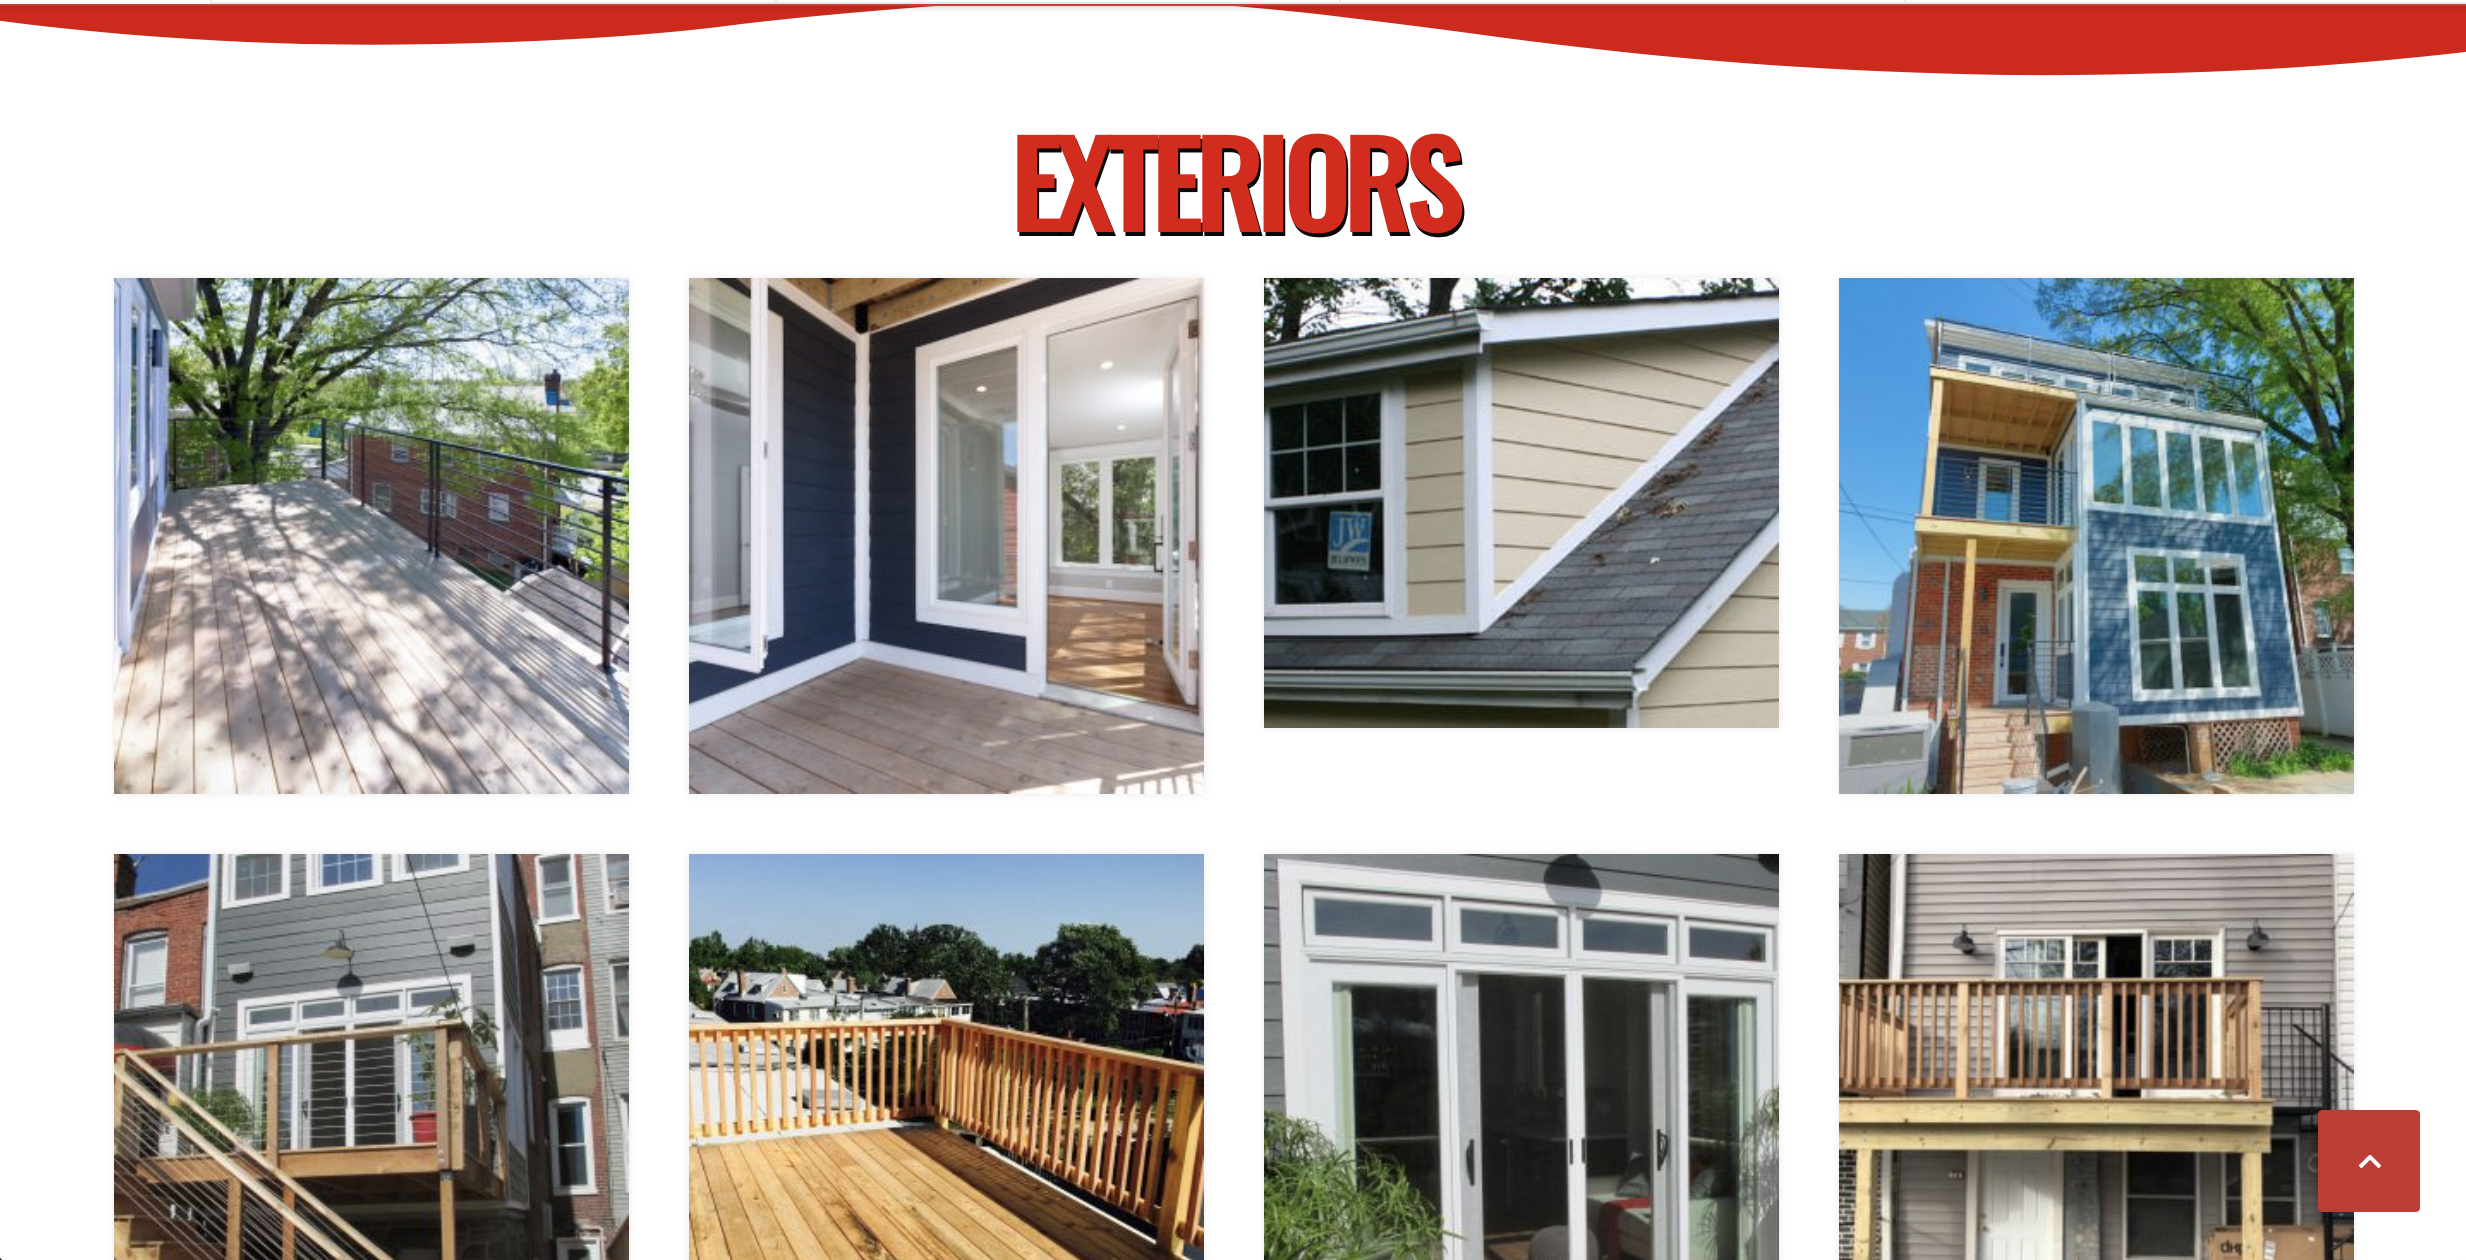 photo of images gallery of exterior photos of homes in a 4x2 grid